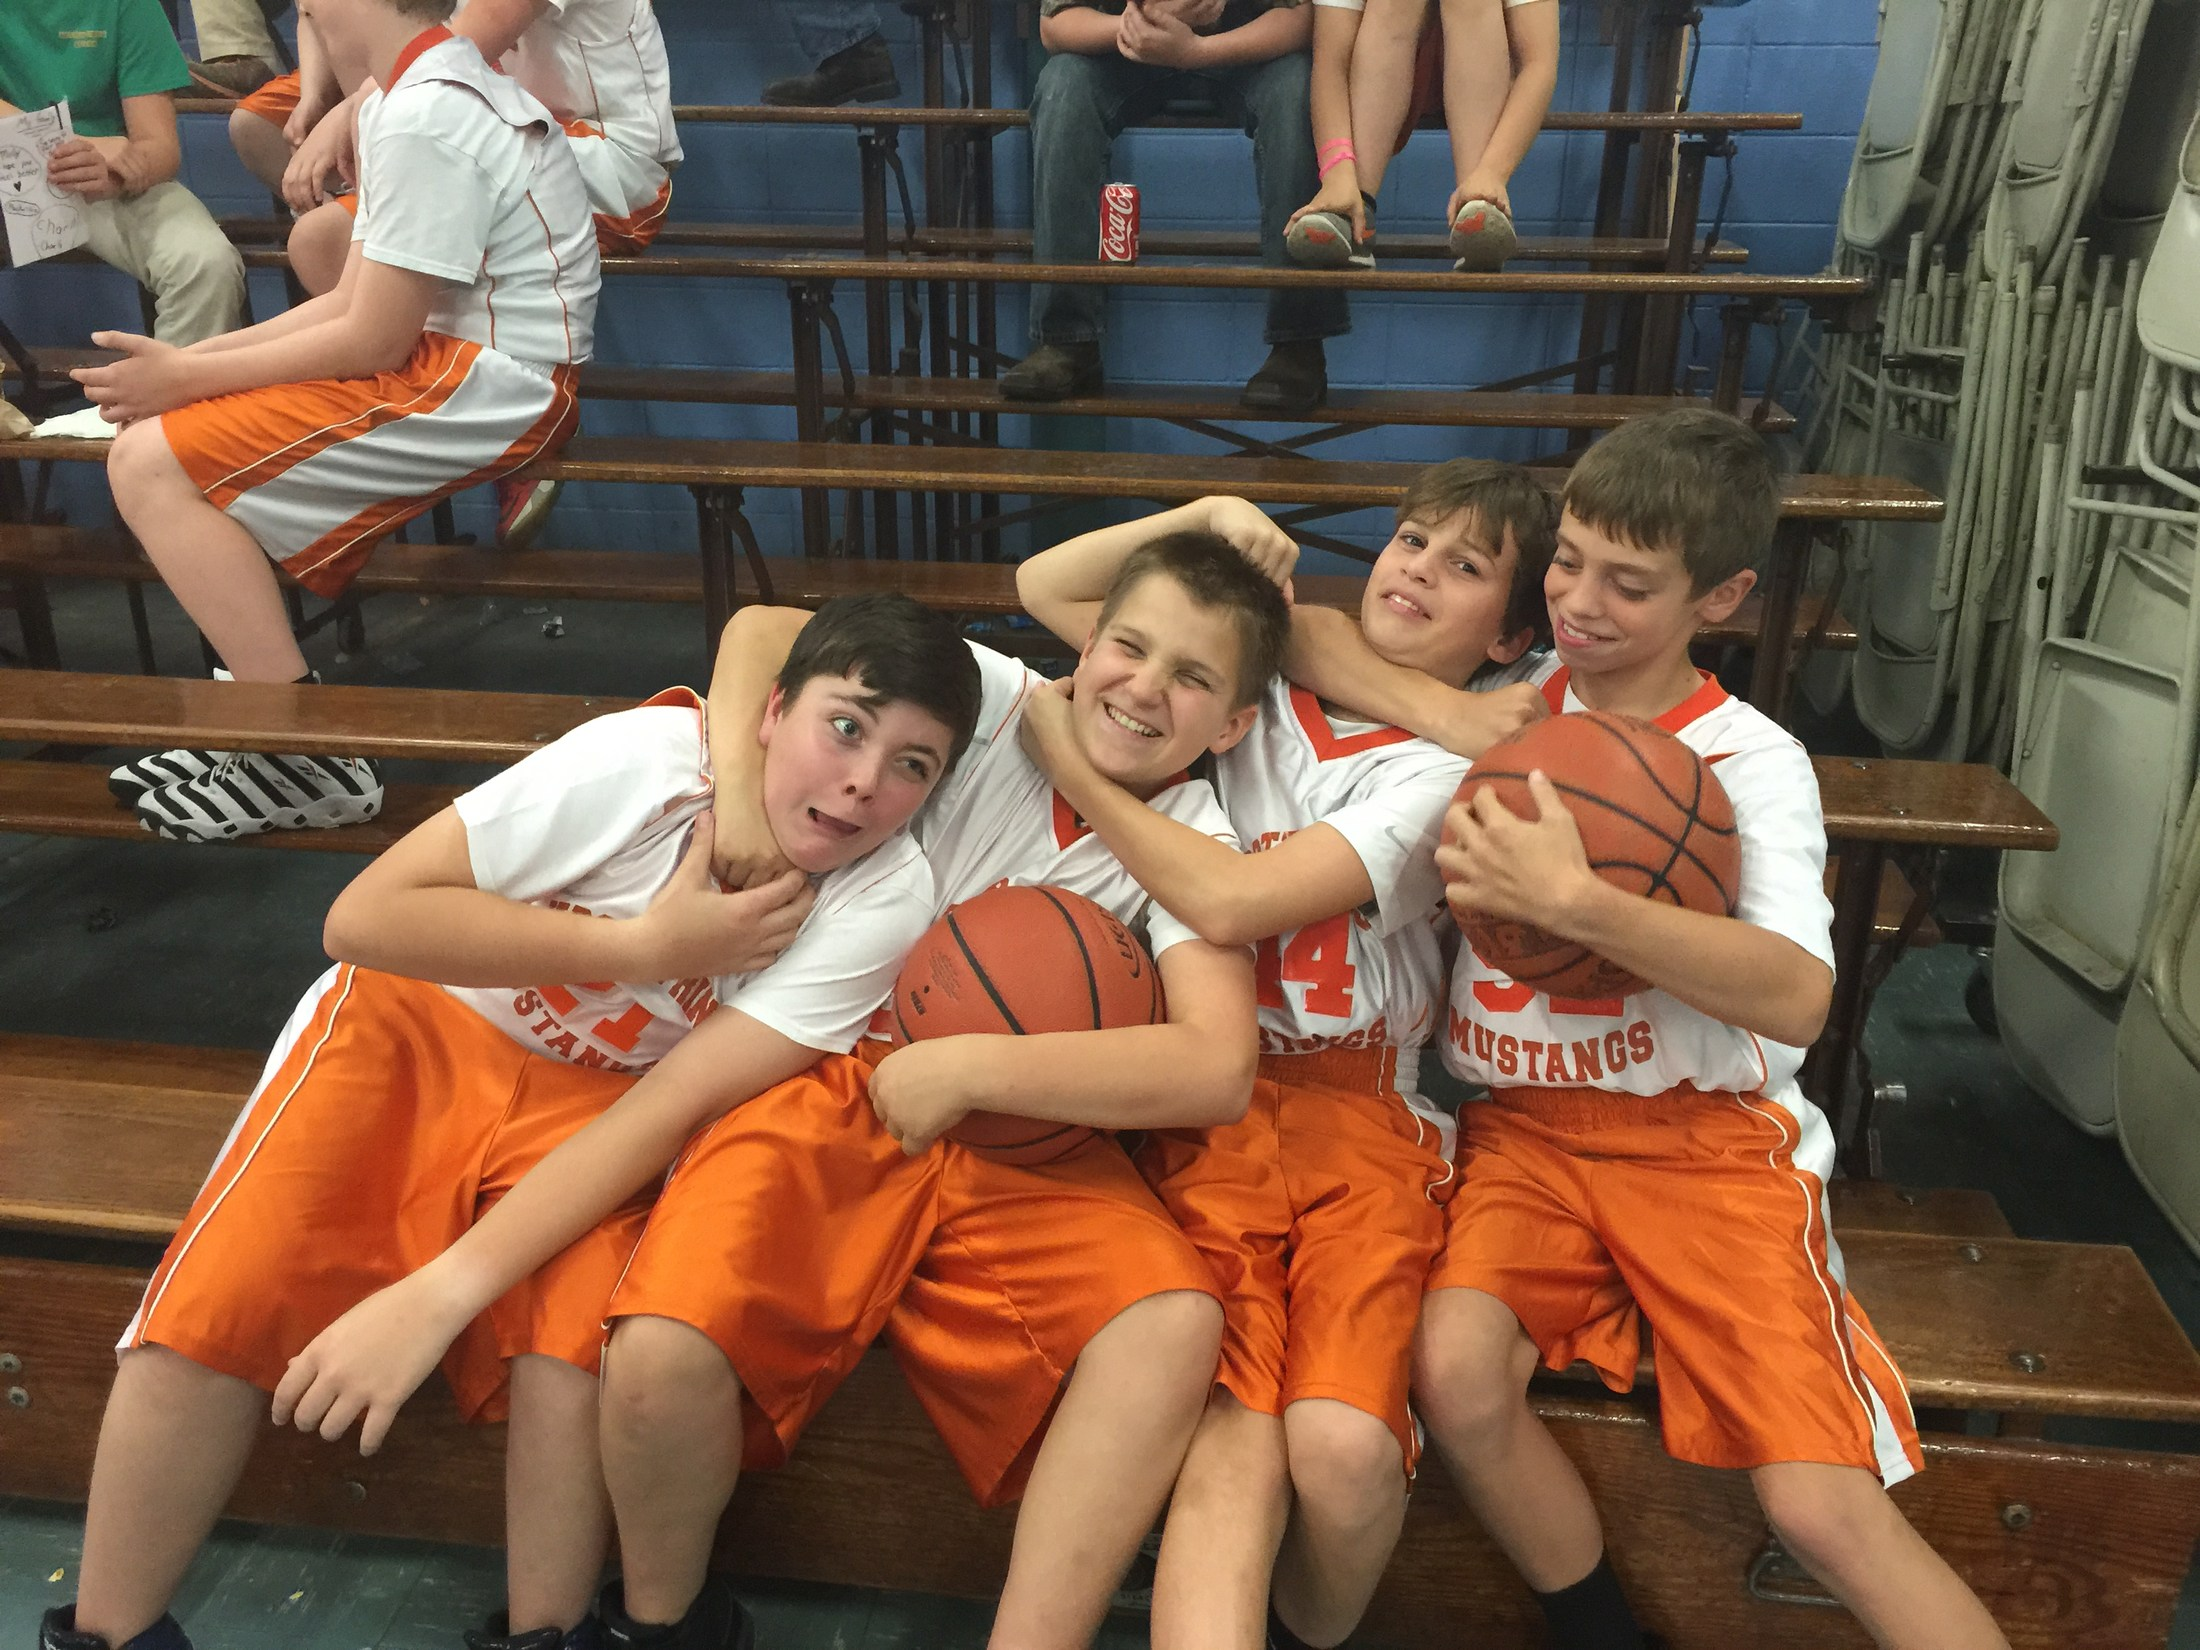 Silly pic of 7th grade basetball players